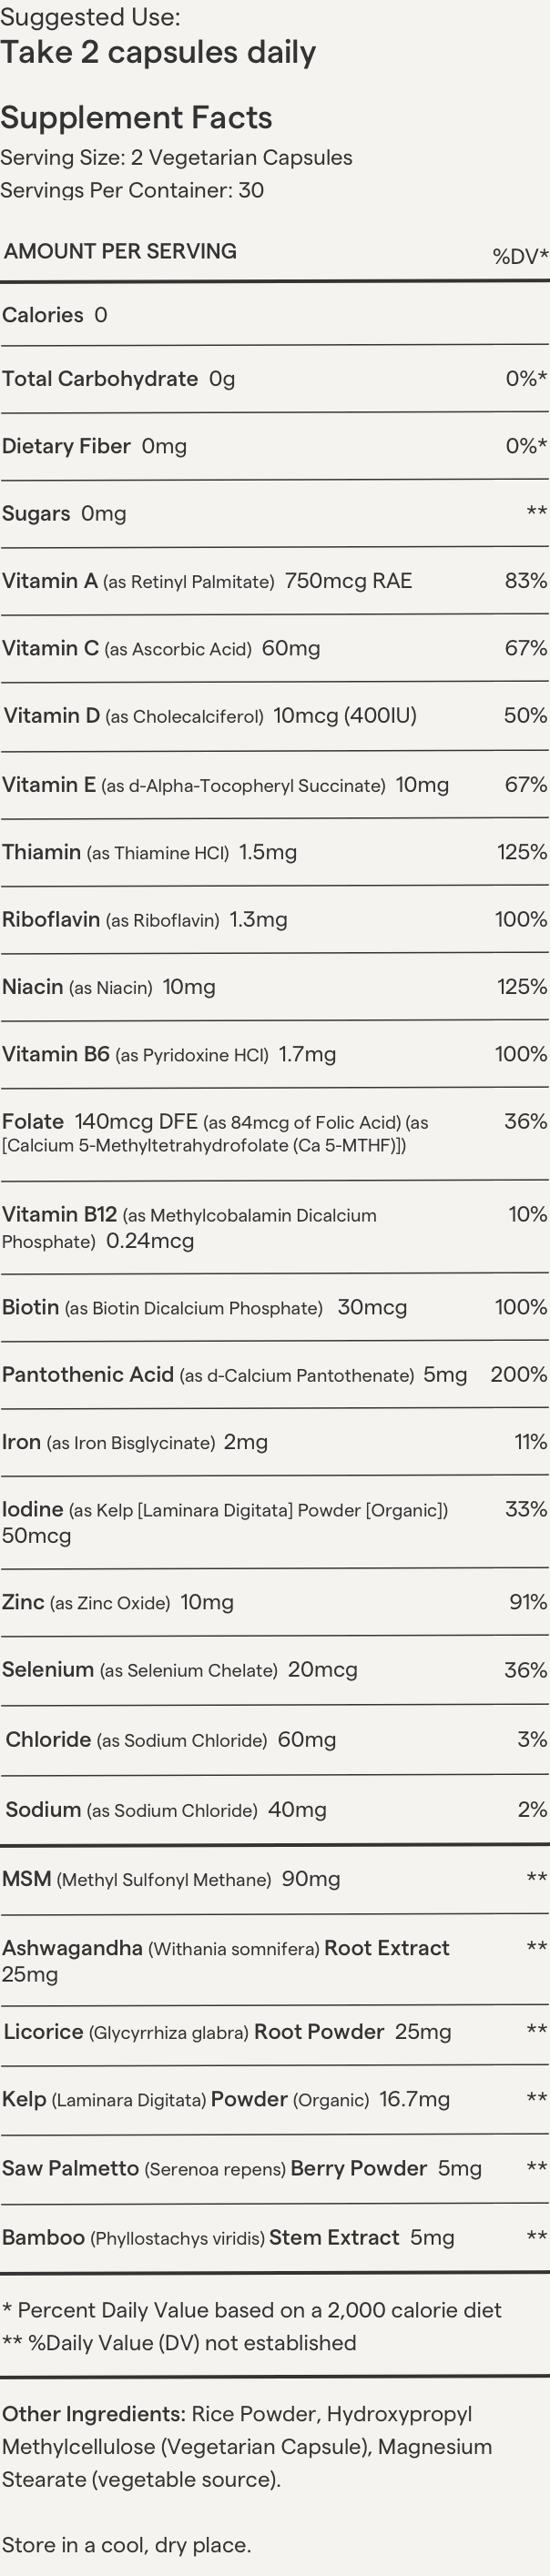 infographic of supplement information.